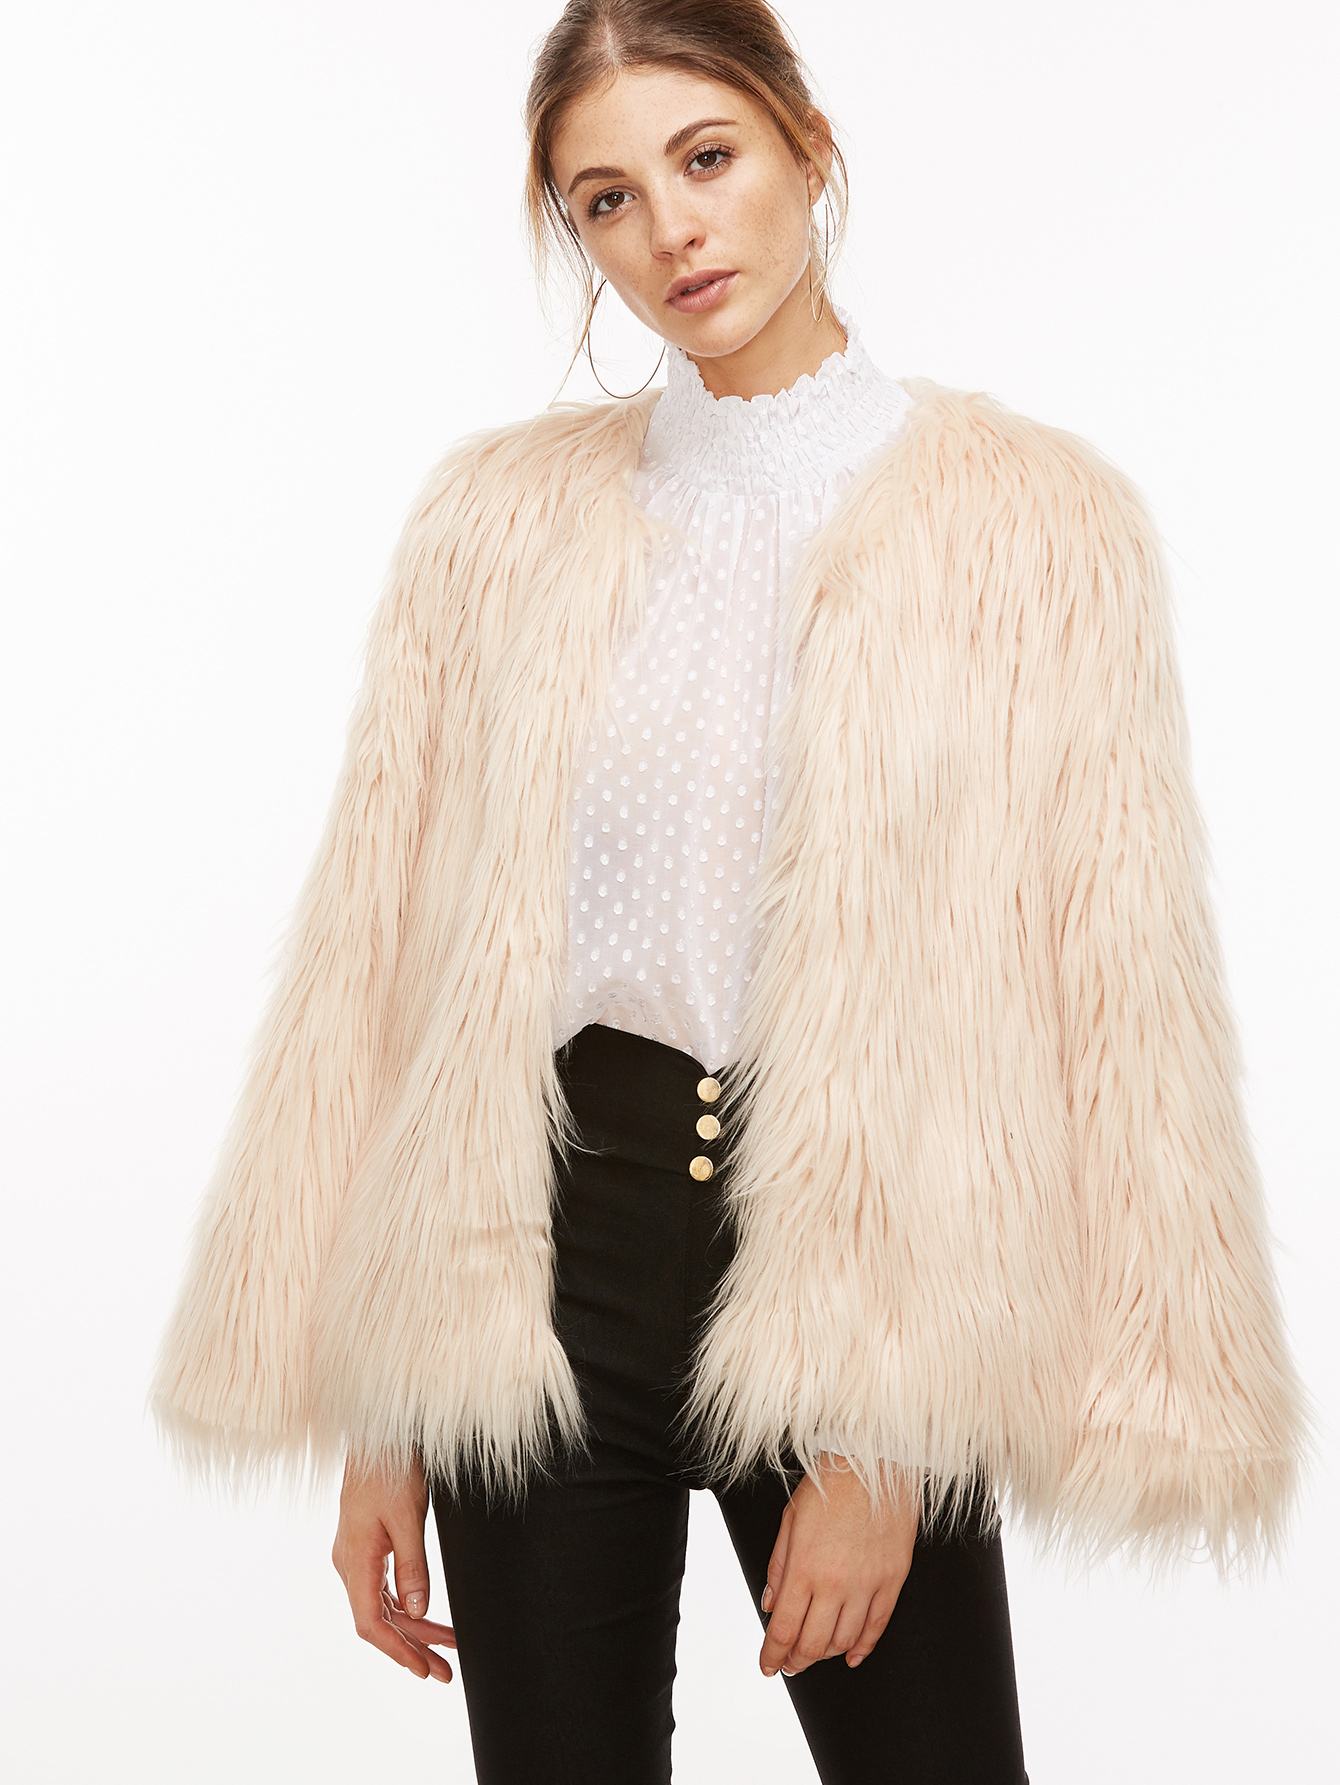 Apricot Faux Fur Coat - $57.99 - us.shein.com